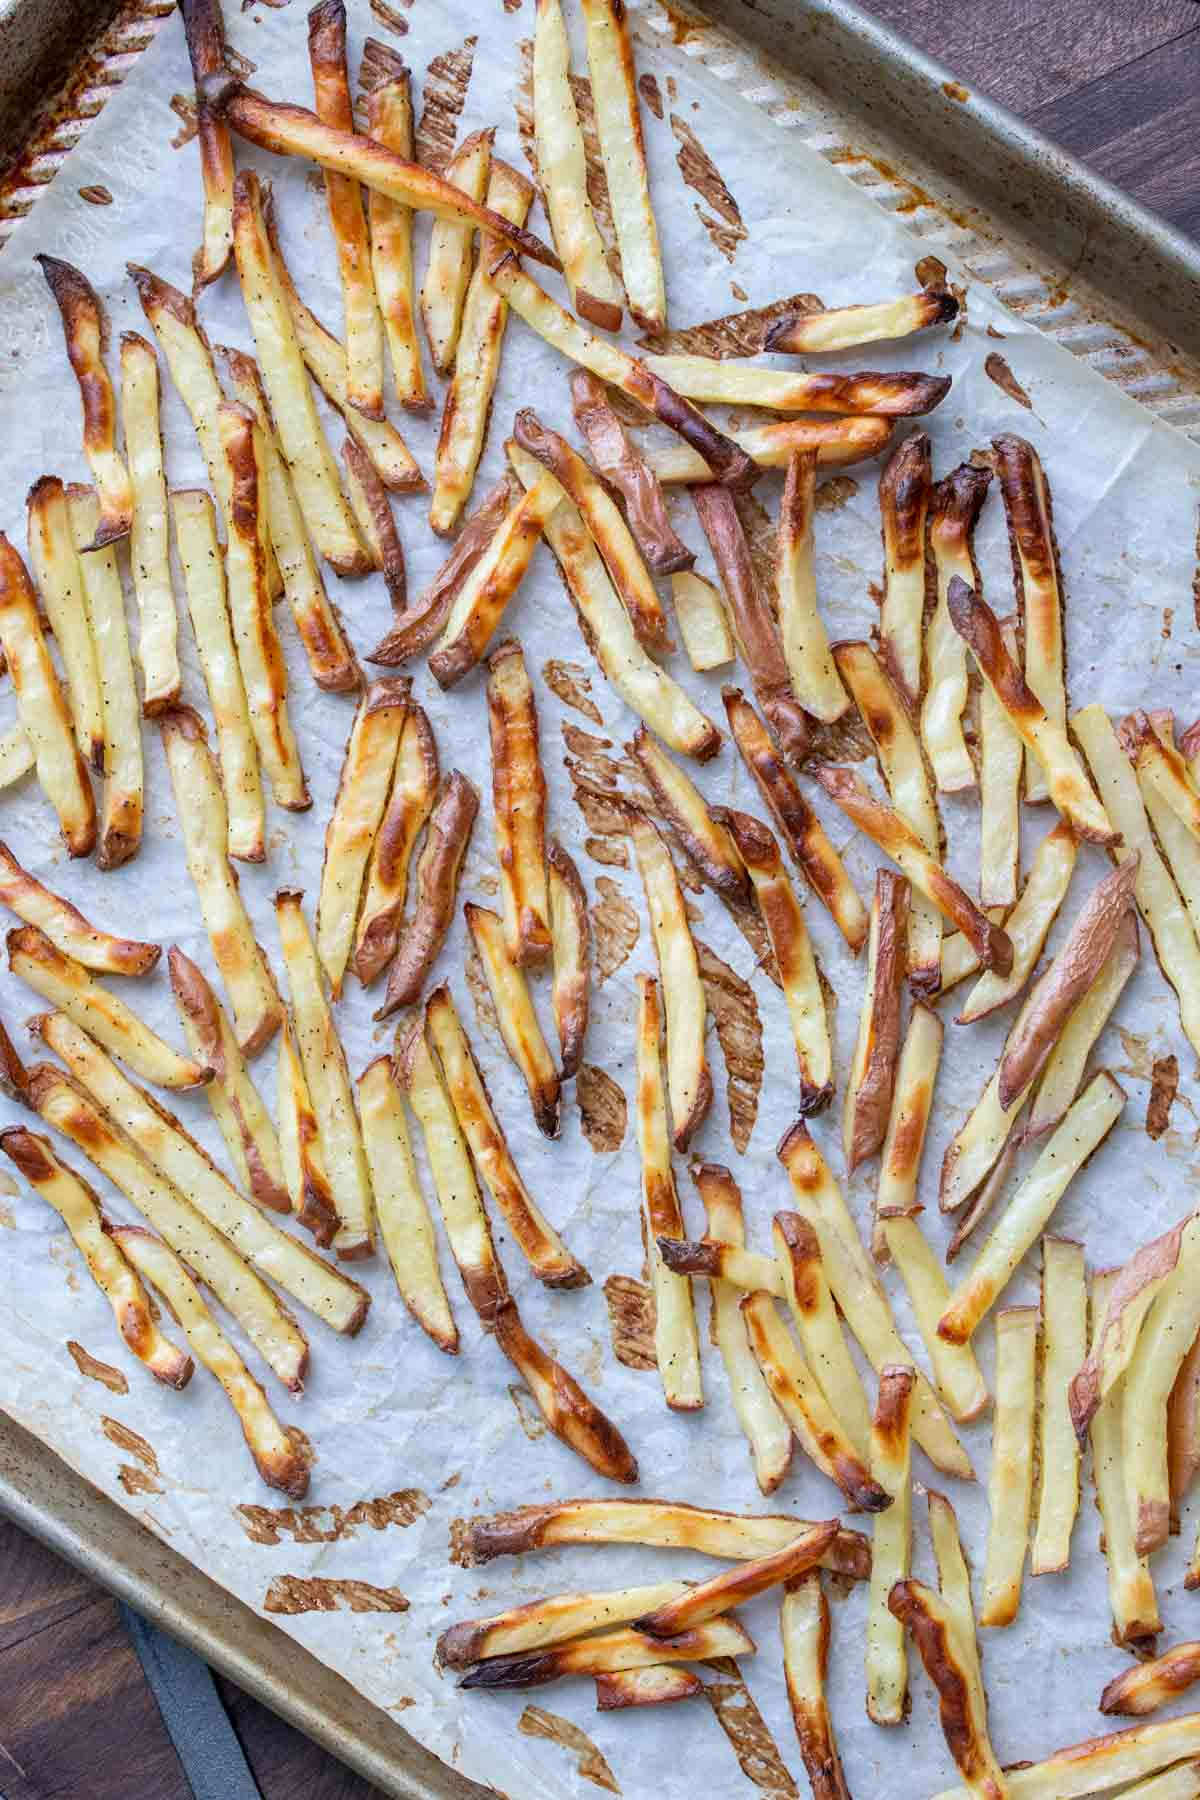 Crispy baked french fries on a parchment lined cookie sheet